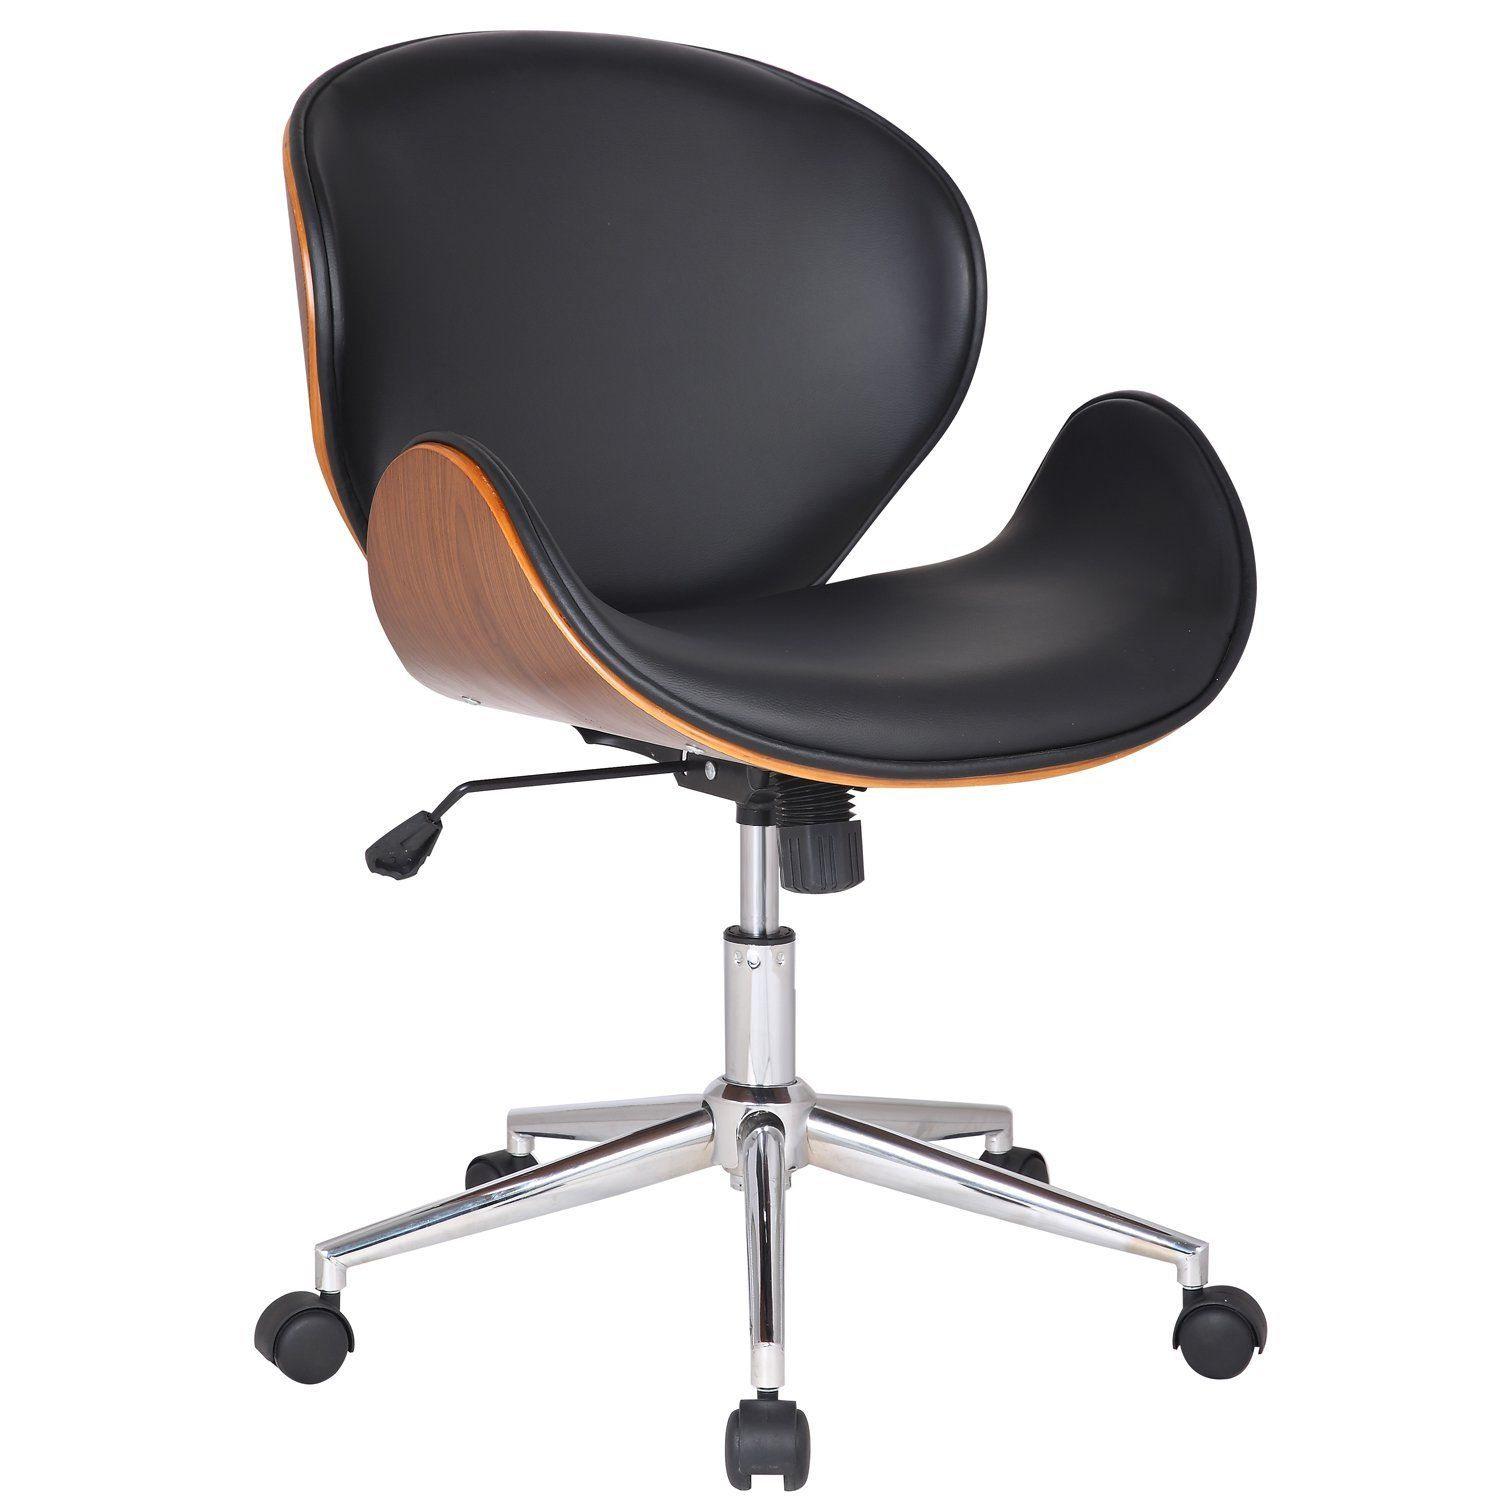 adeco bentwood walnutcolor home office chair leatherette cushion seat with curved back ch0162 ch0162